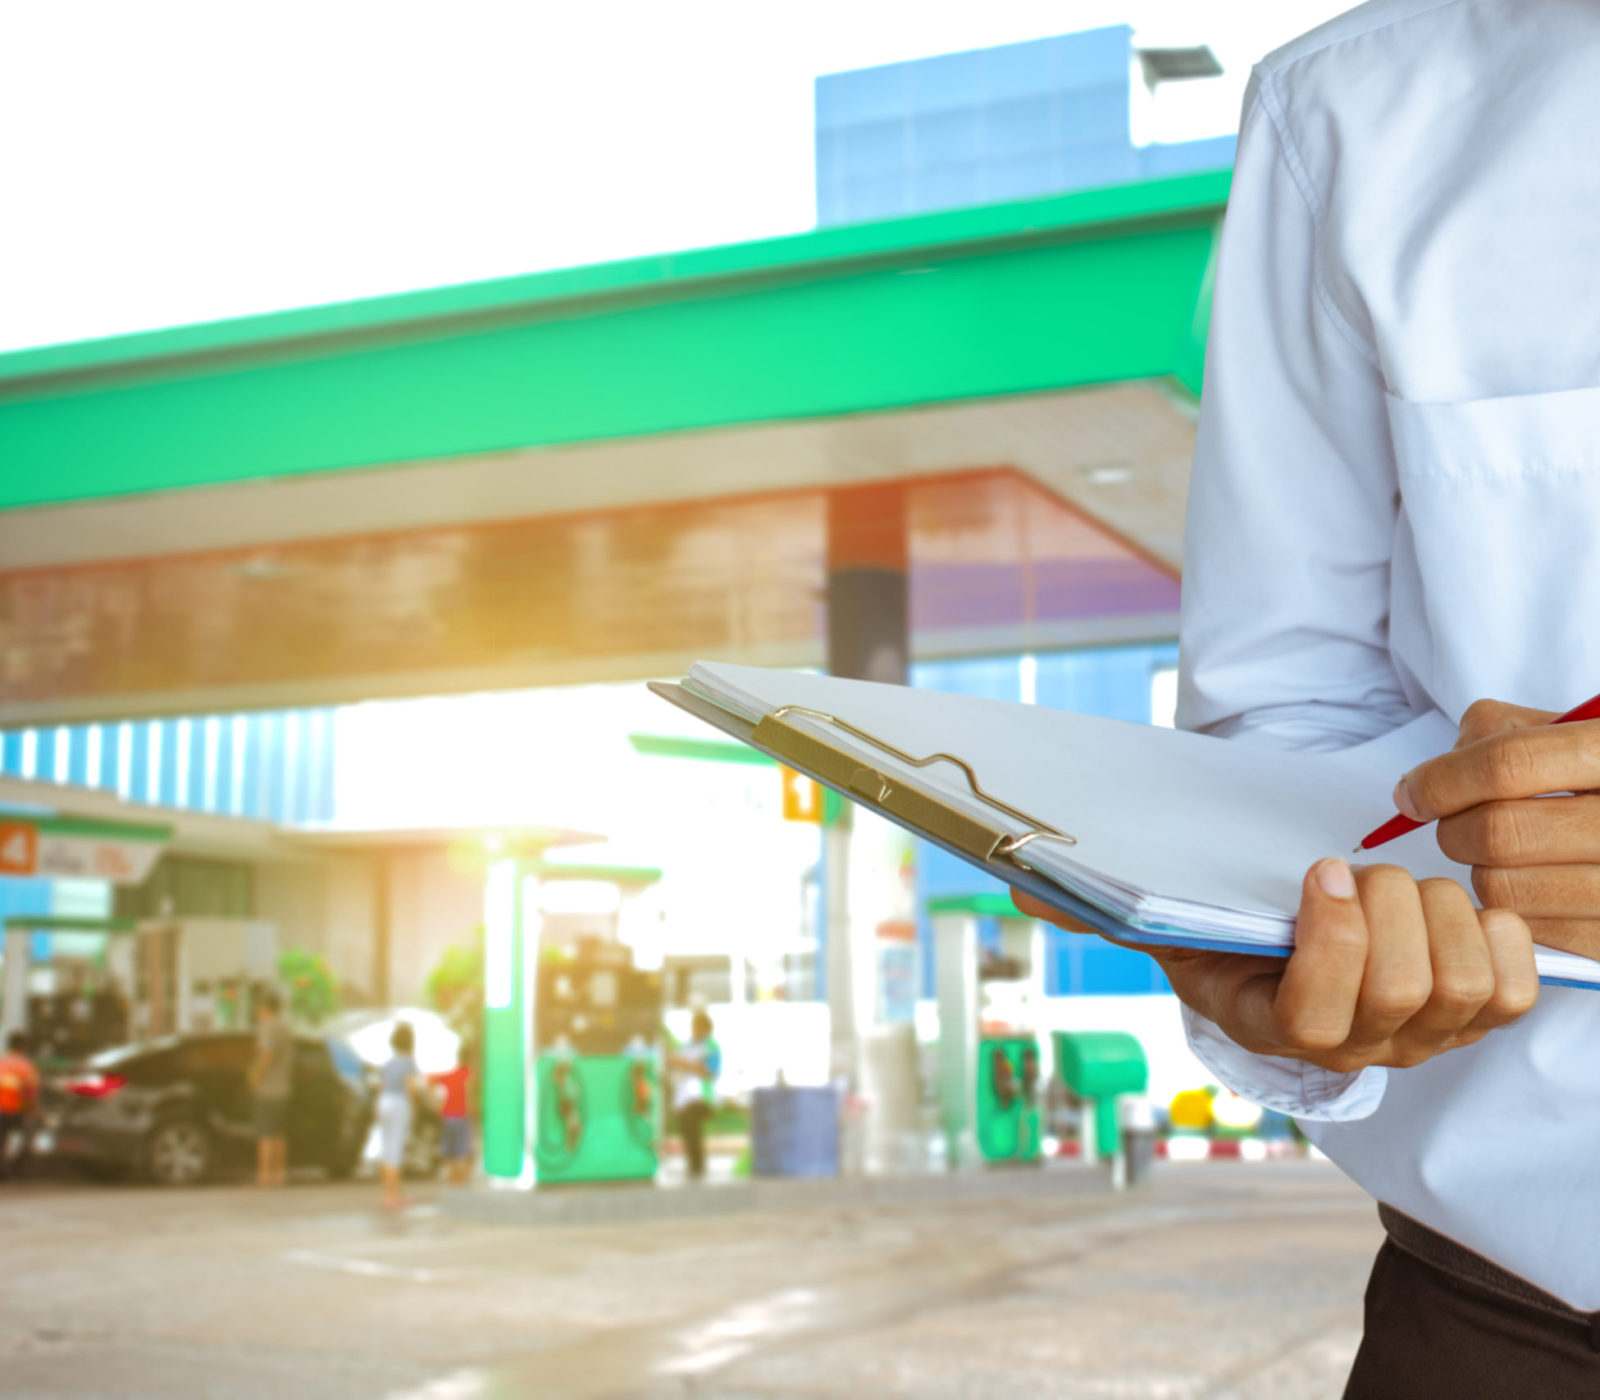 Man staff oil or gas station writing on notrpad using energy for car or transportation, automobile, automotive, refuel, image